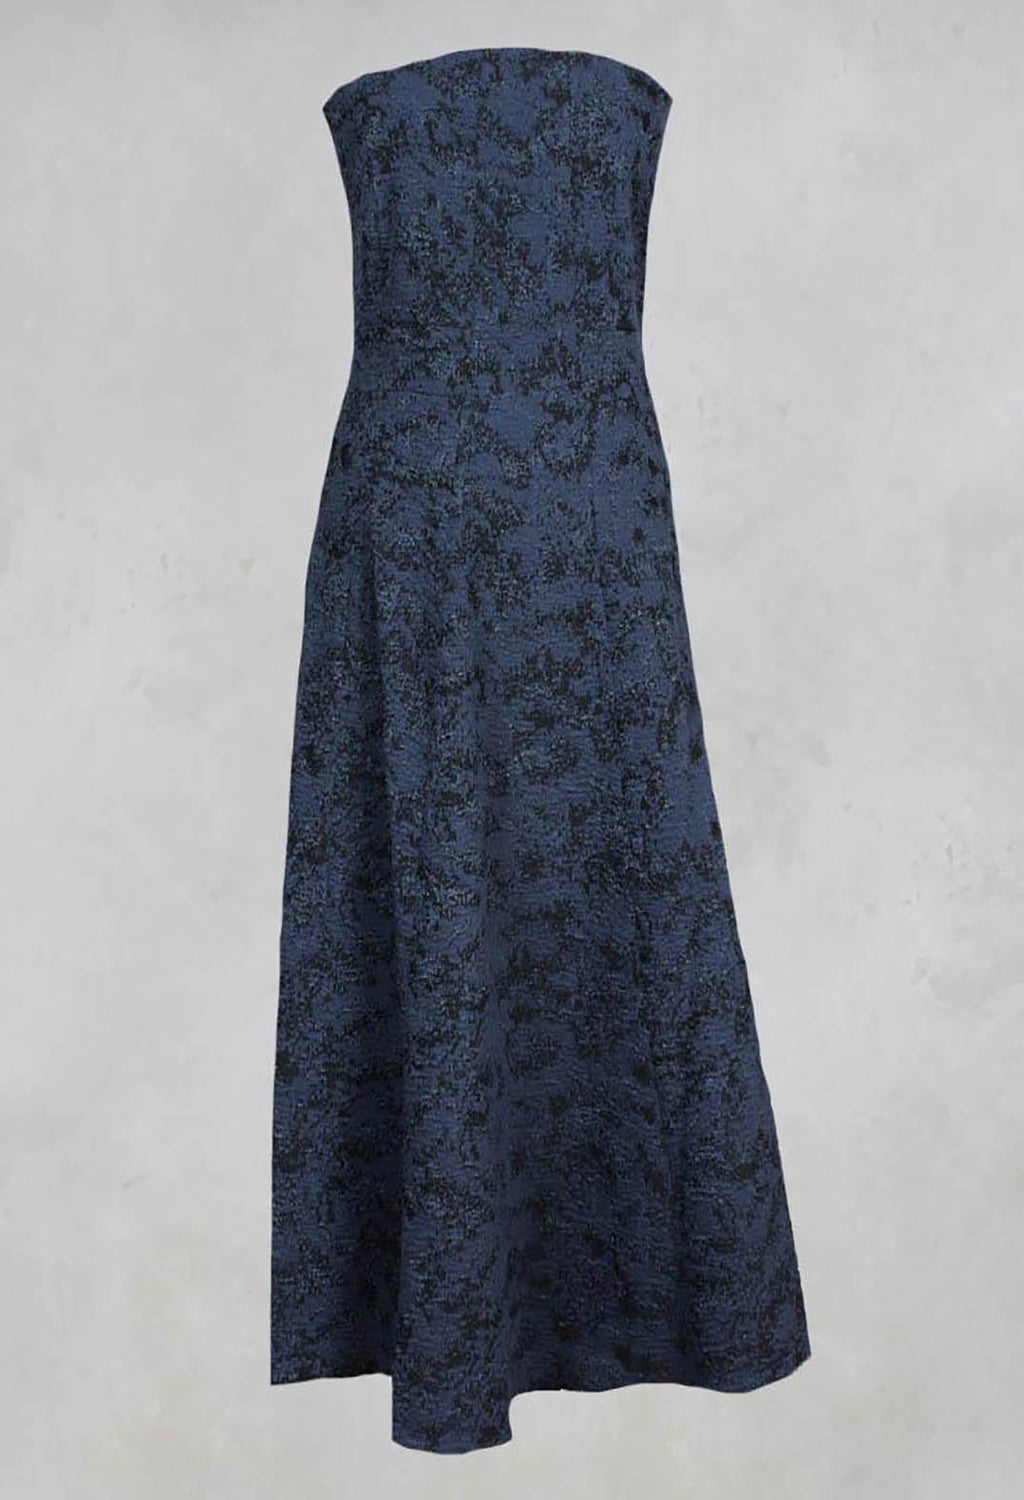 Strapless Dress with Textured Pattern and Flared Skirt in Ink